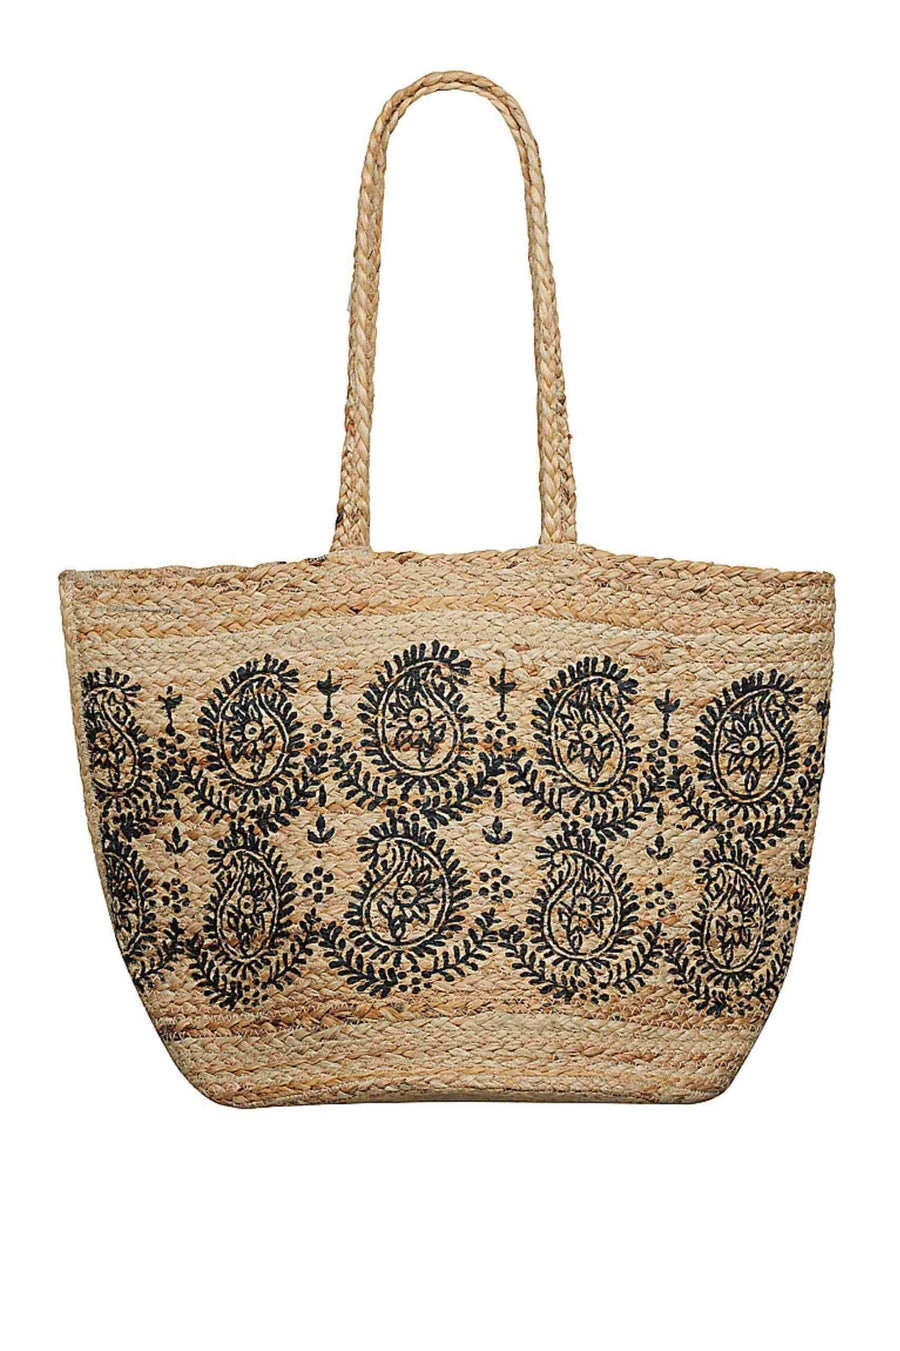 Beach Bag - Natural Paisley Printed Capriosca Swimwear Australia